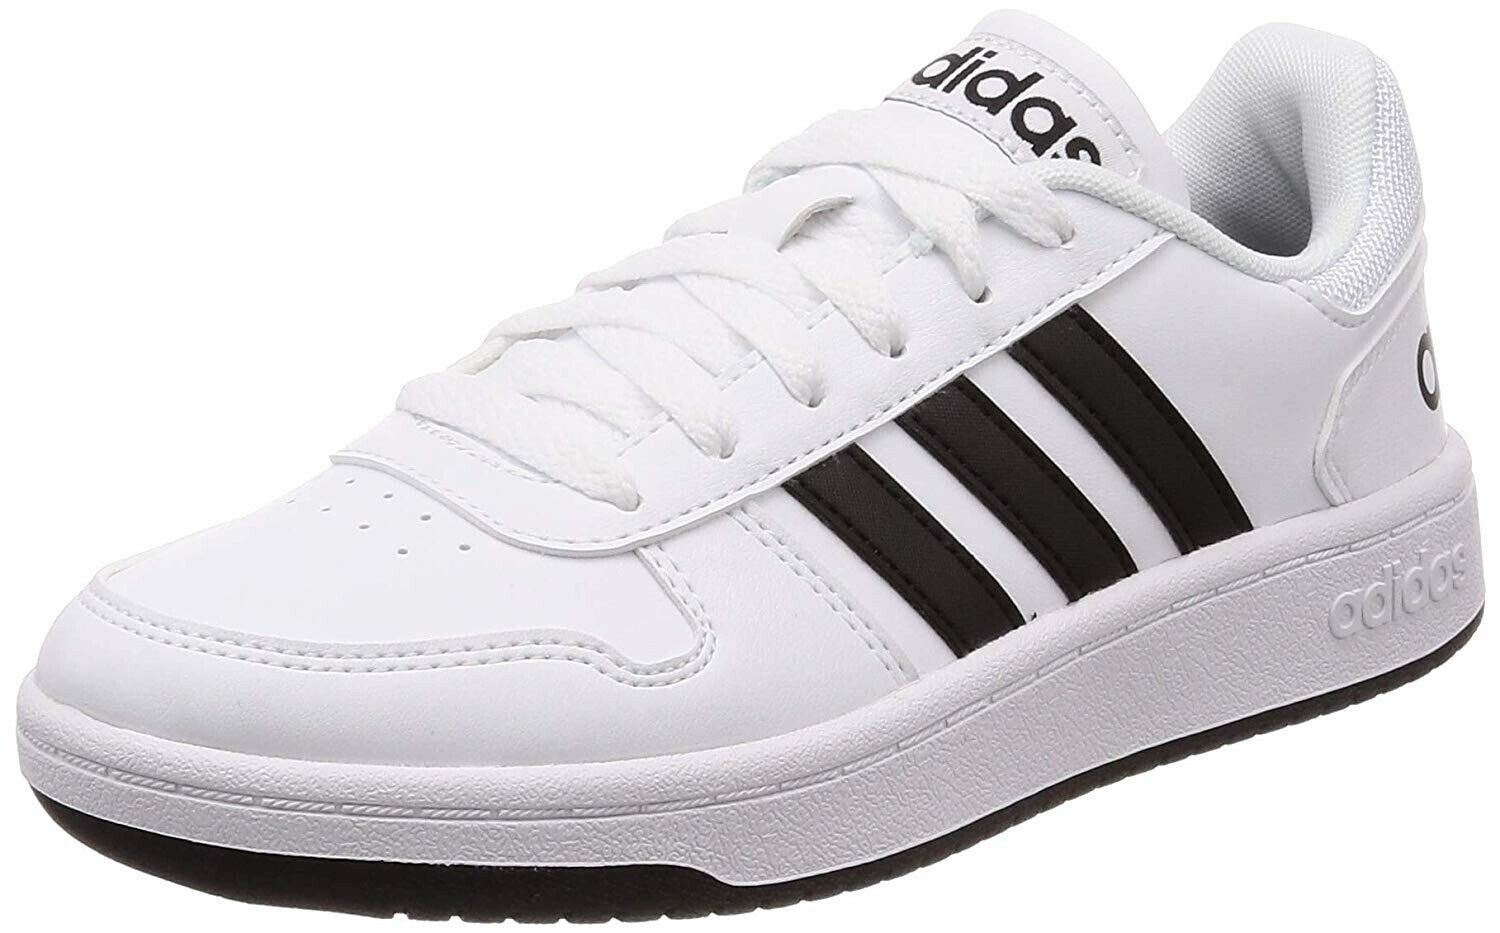 Adidas Hoops 2.0 Men's Walking shoes Sneakers White NEW F34841